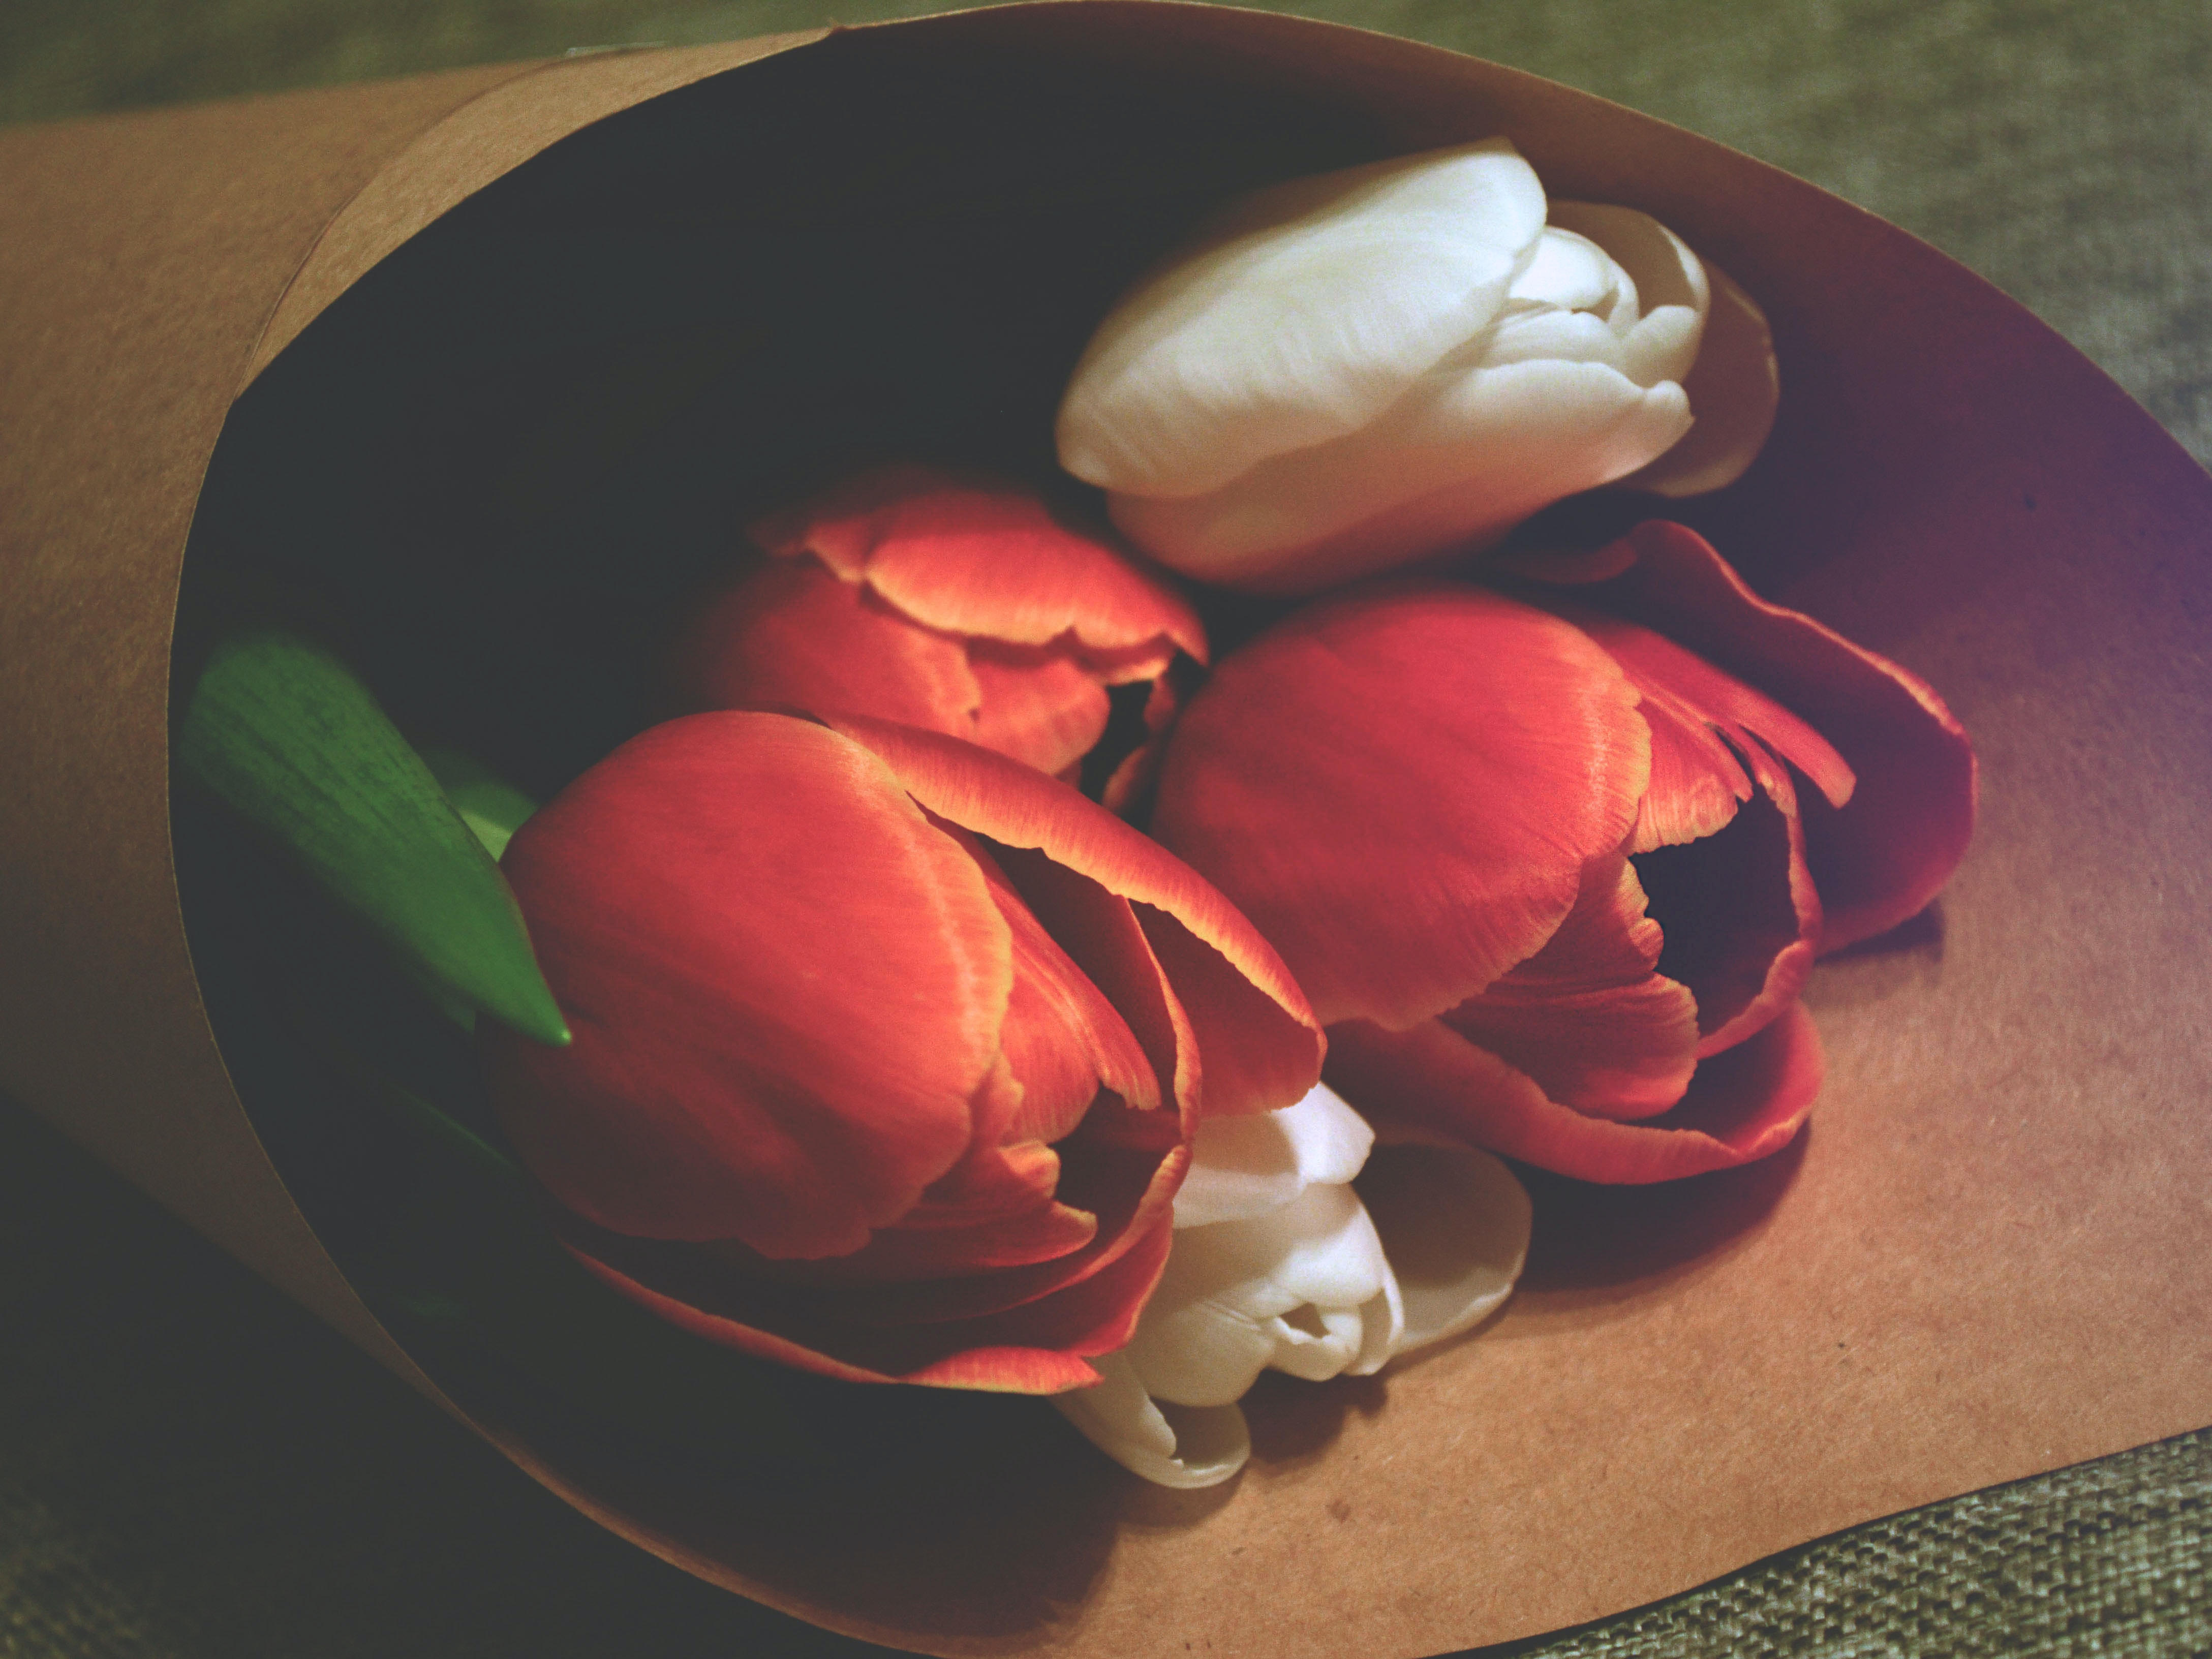 A close-up bouquet of red and white tulips laying on green upholstery